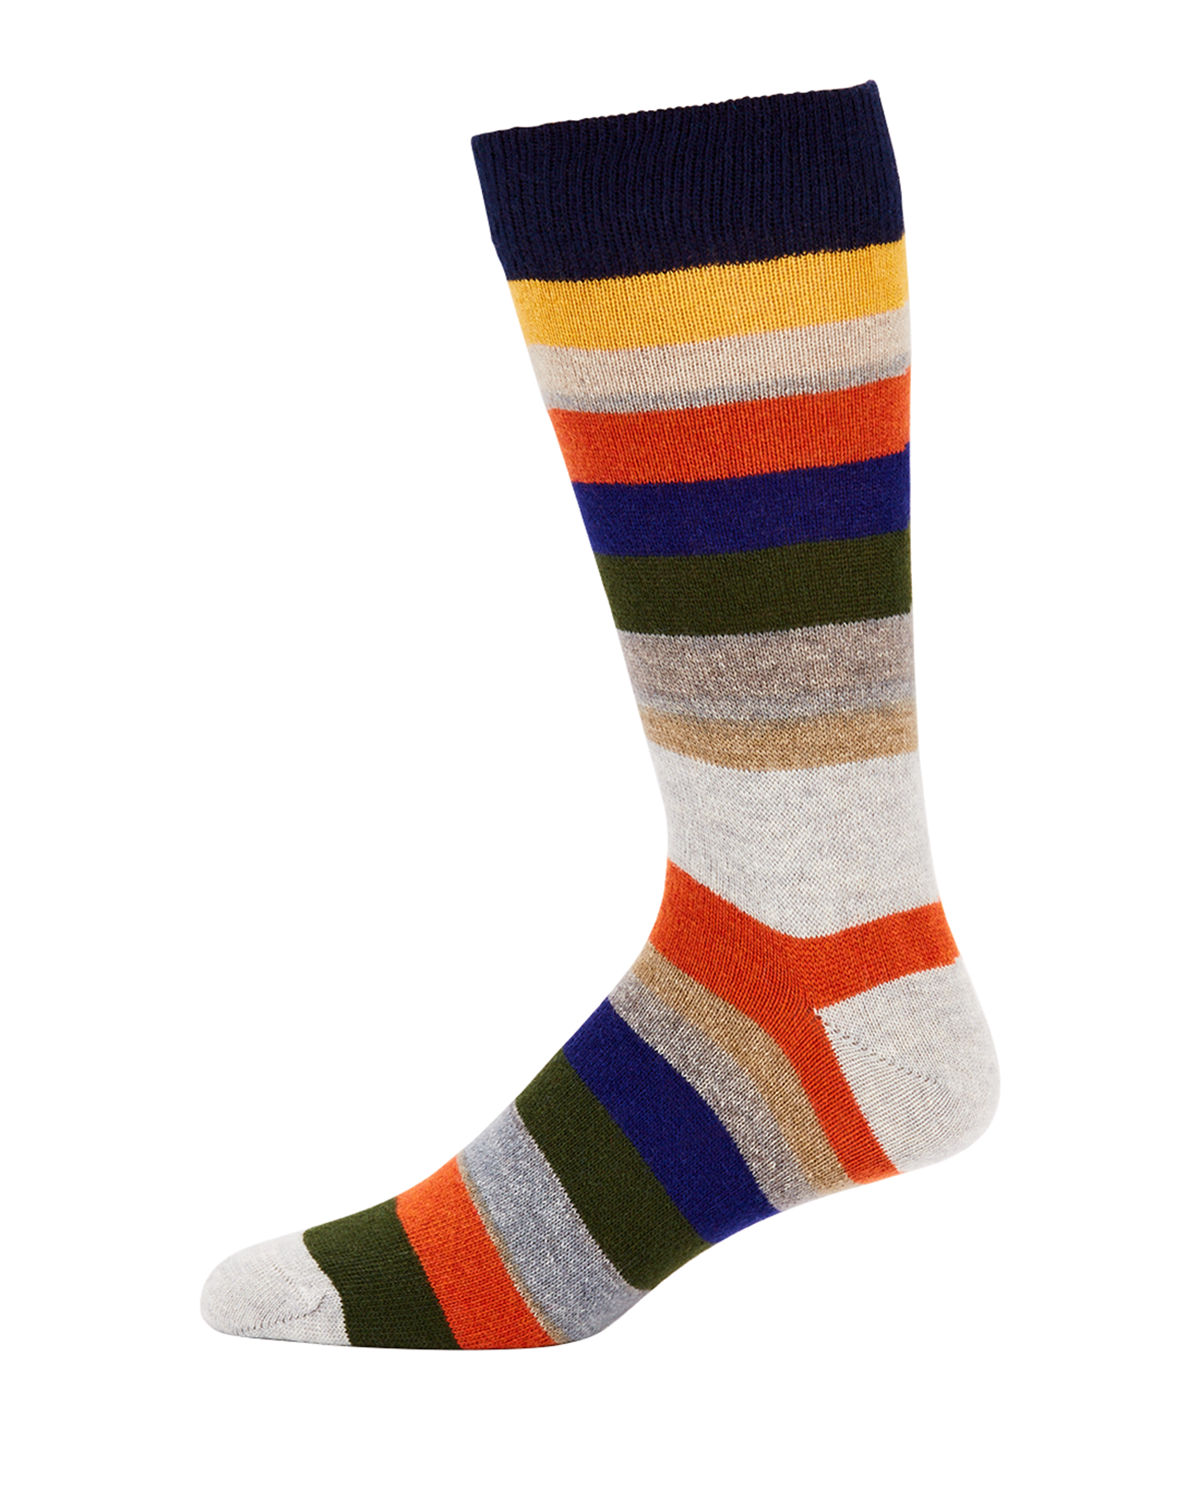 Paul Smith MEN'S NUANCE STRIPES SOCKS